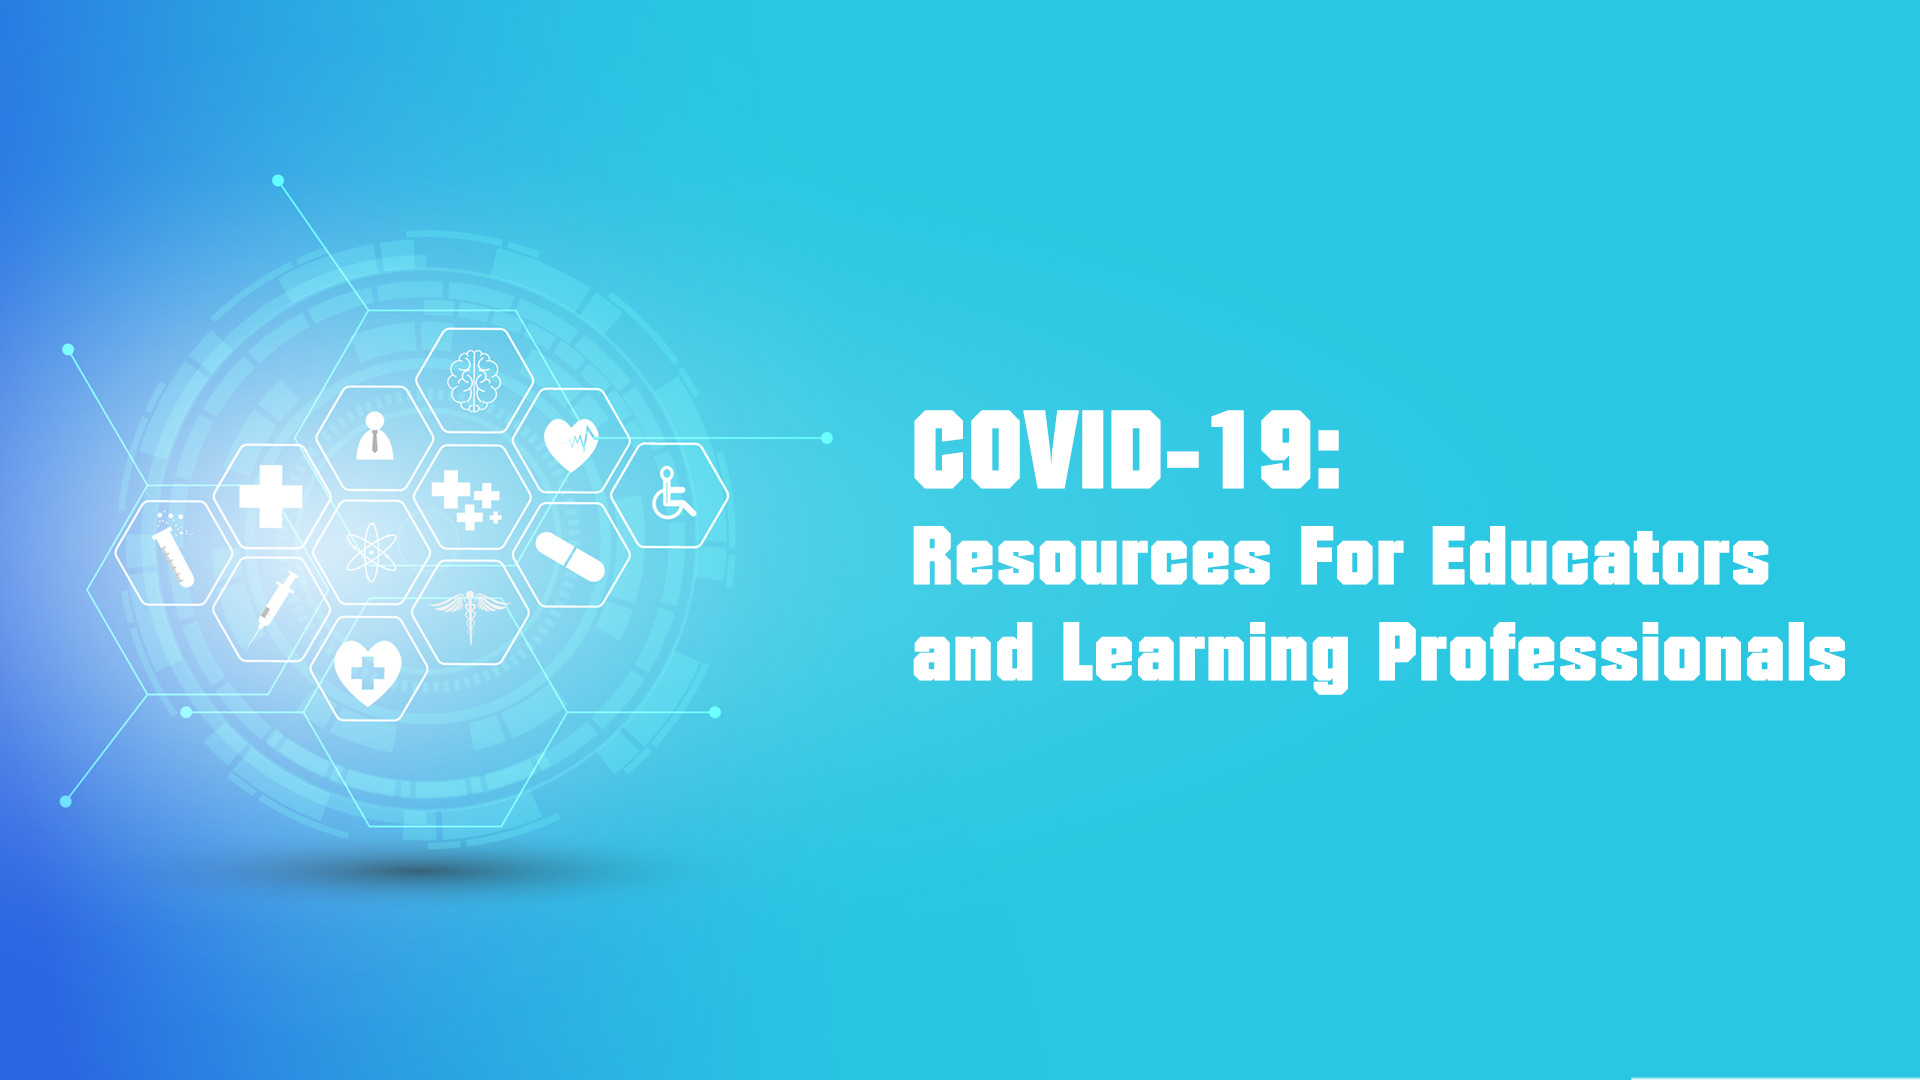 COVID-19: Resources For Educators and Learning Professionals